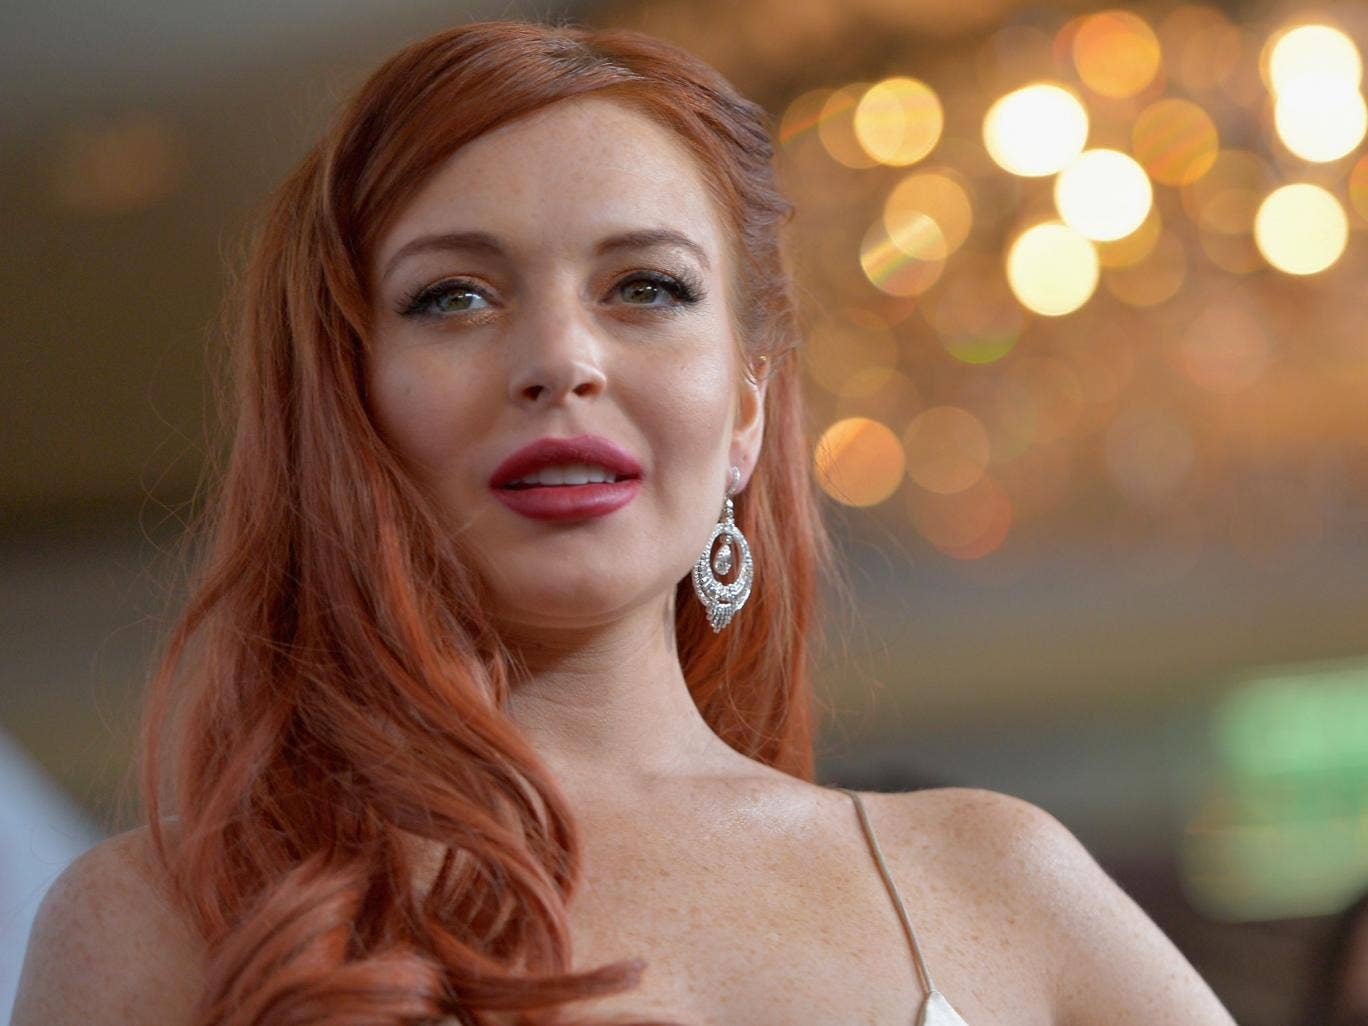 Lindsay Lohan is excited for her new project, Inconceivable, in which she plays a character to whom she can relate